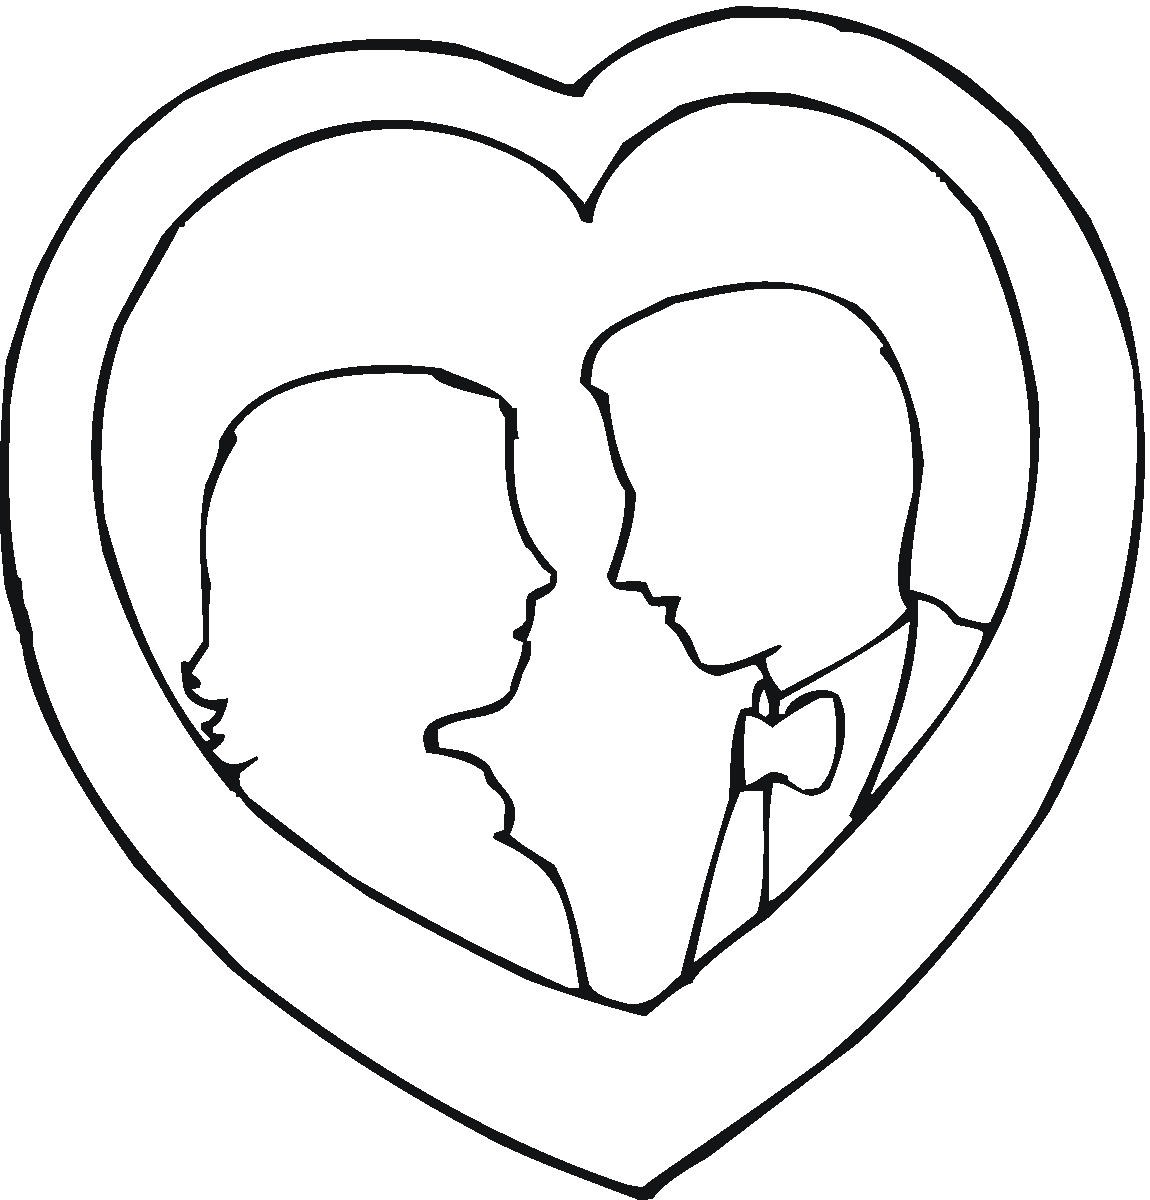 Free Wedding Heart Design Clipart Download Free Clip Art